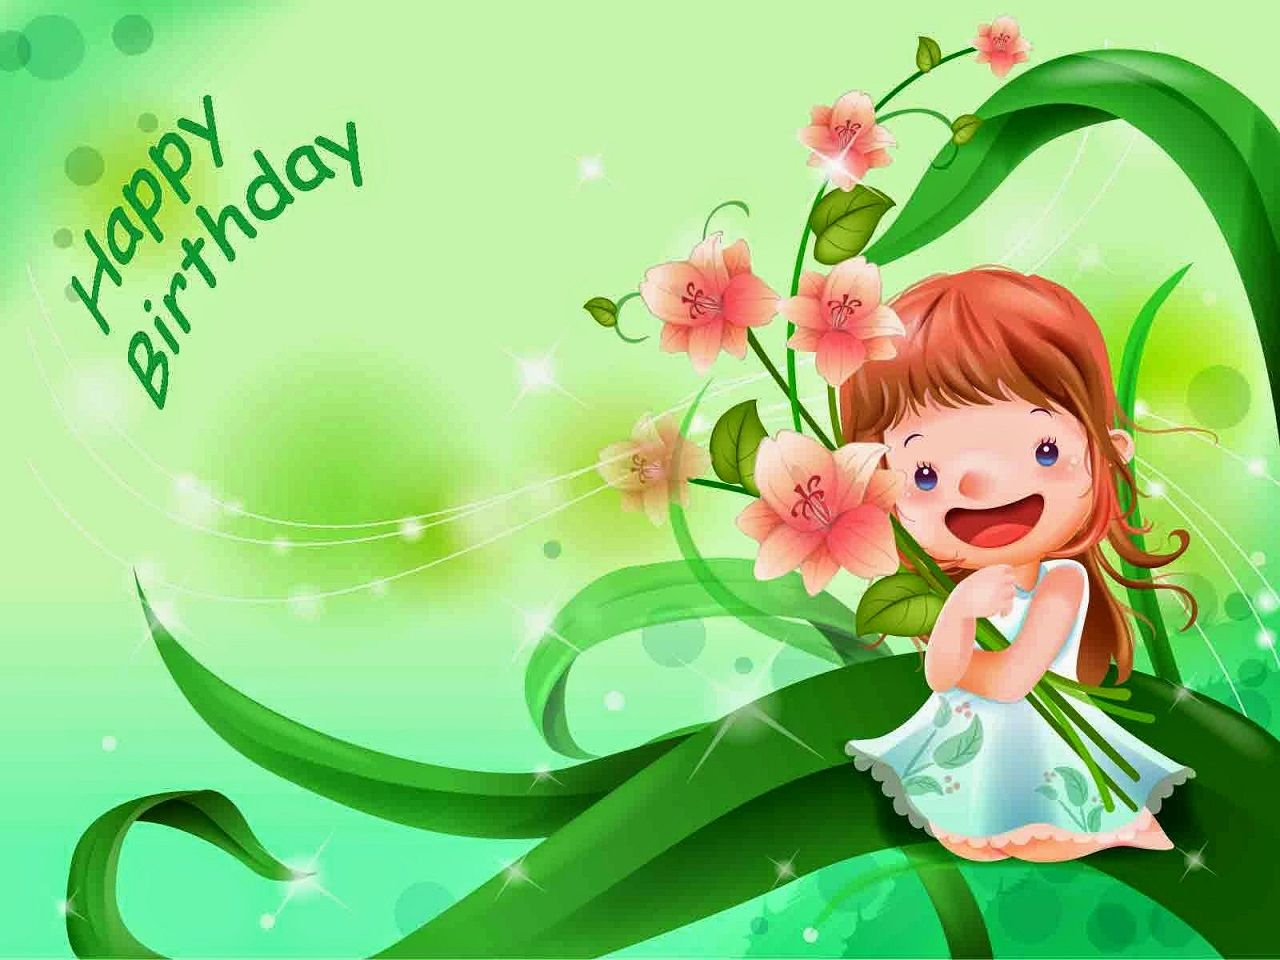 Pin by allupdatehere on lovely birthday wishes for baby girl happy birthday cute little girl free hd wallpaper kristyandbryce Gallery